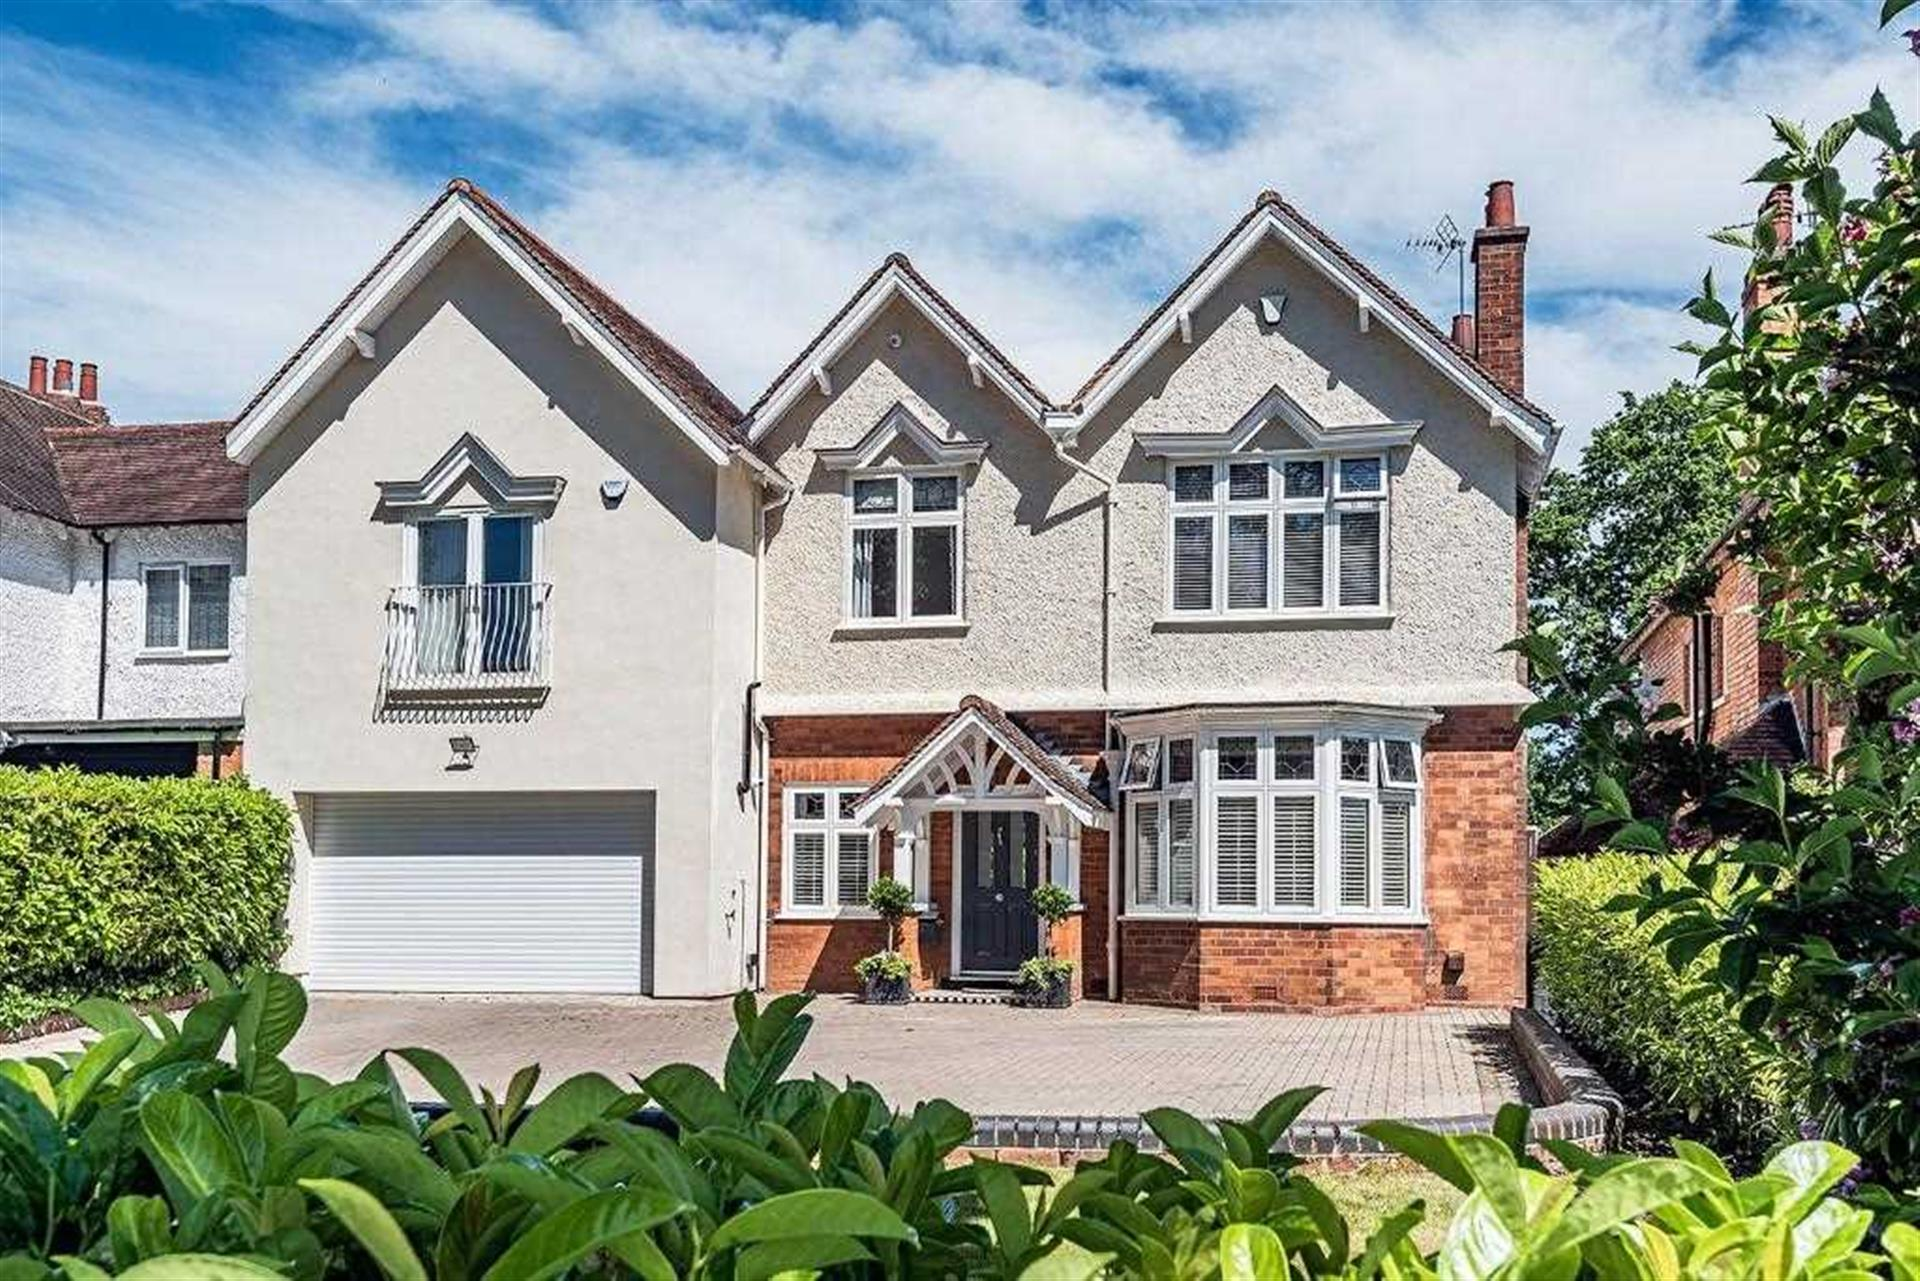 4 Bedroom Detached House To Rent - Main Picture